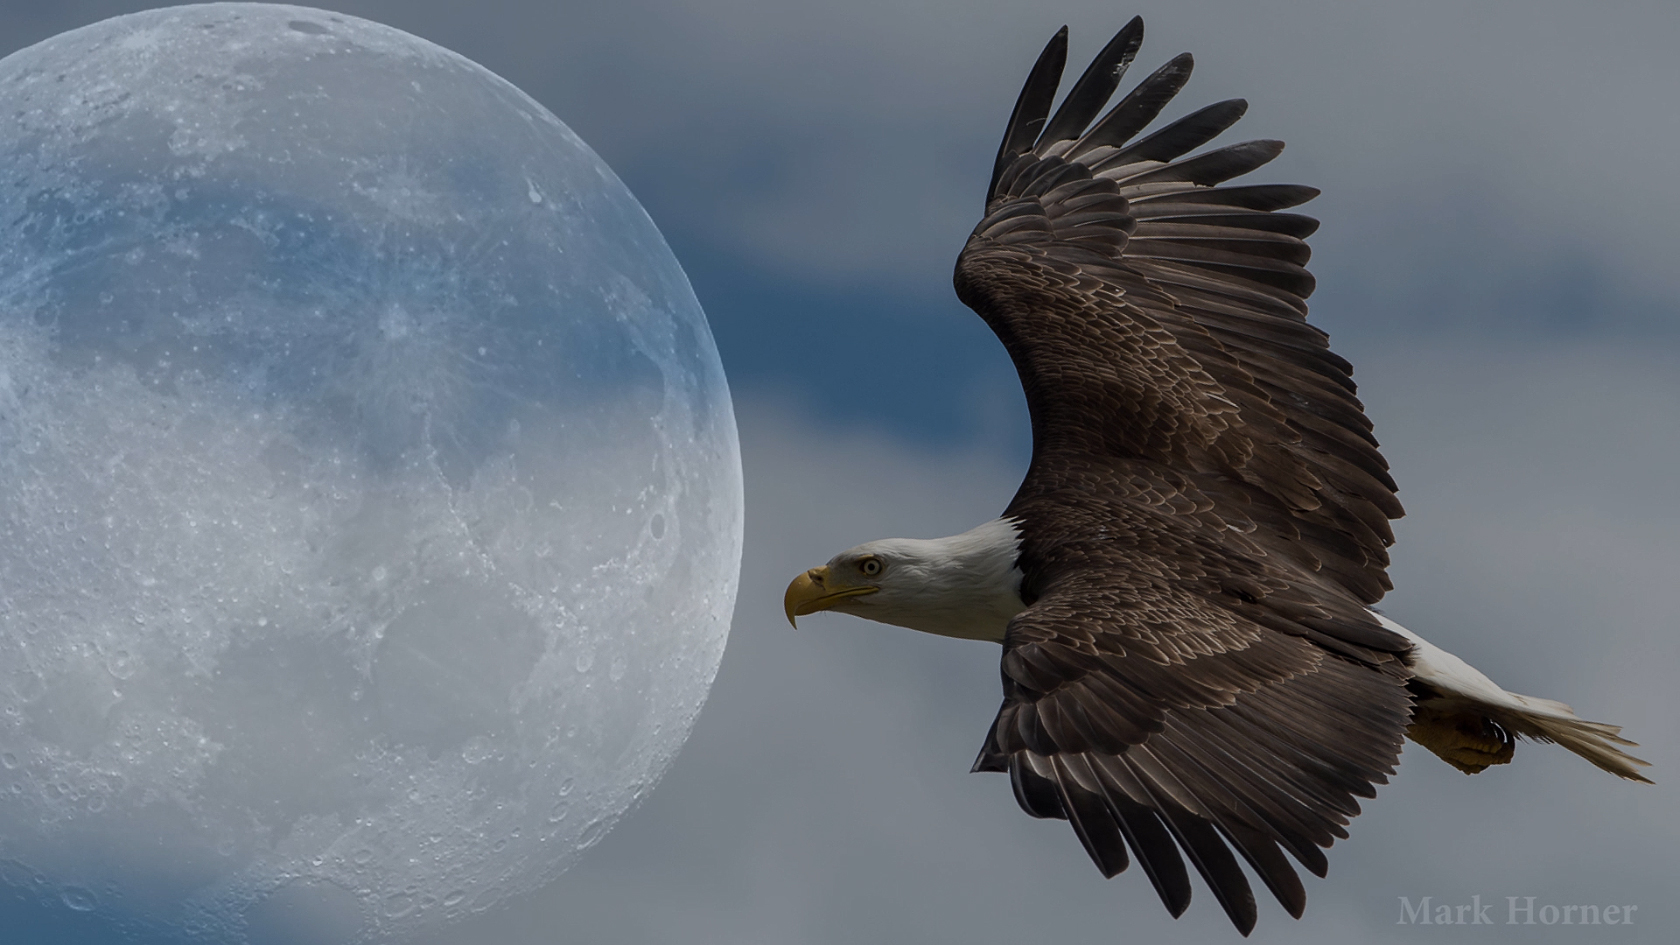 Record-setting amateur astronomer now a rising star in Bald Eagle photography